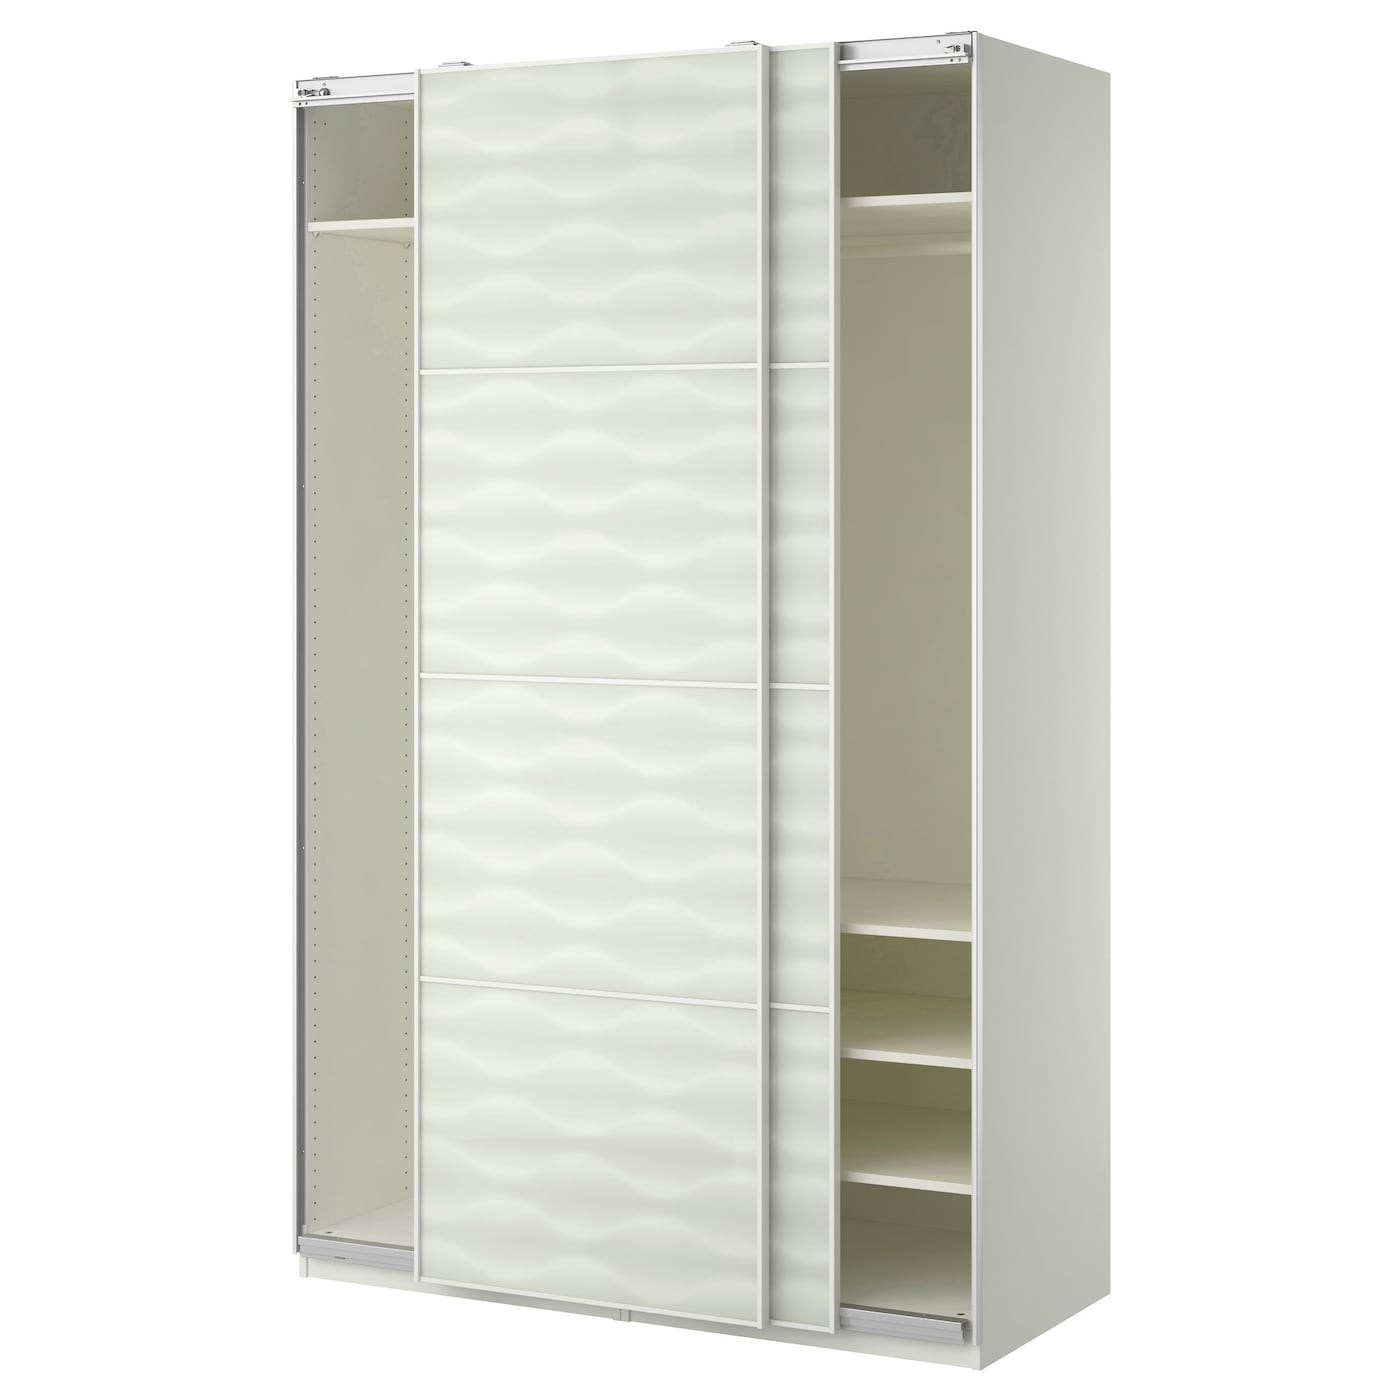 pax wardrobe white innfjorden white glass 150x66x236 cm ikea. Black Bedroom Furniture Sets. Home Design Ideas